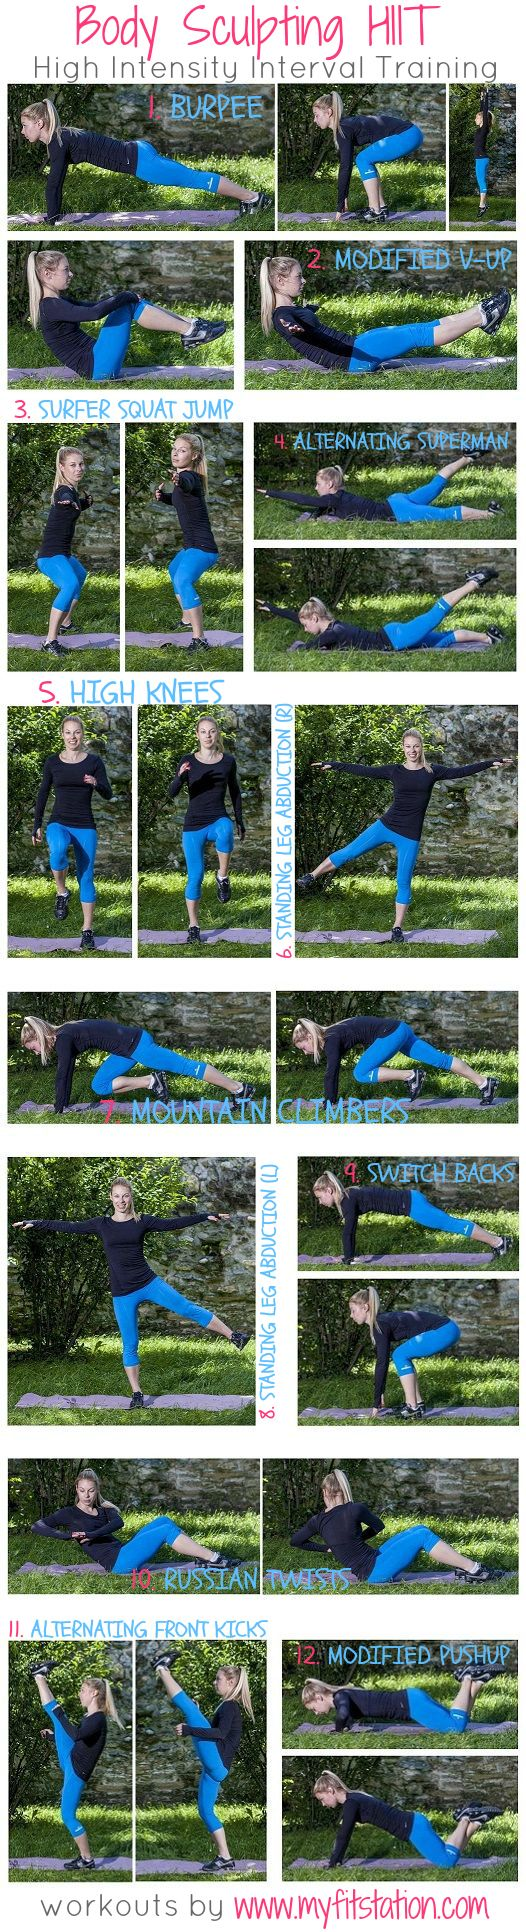 body sculpting HIIT workout